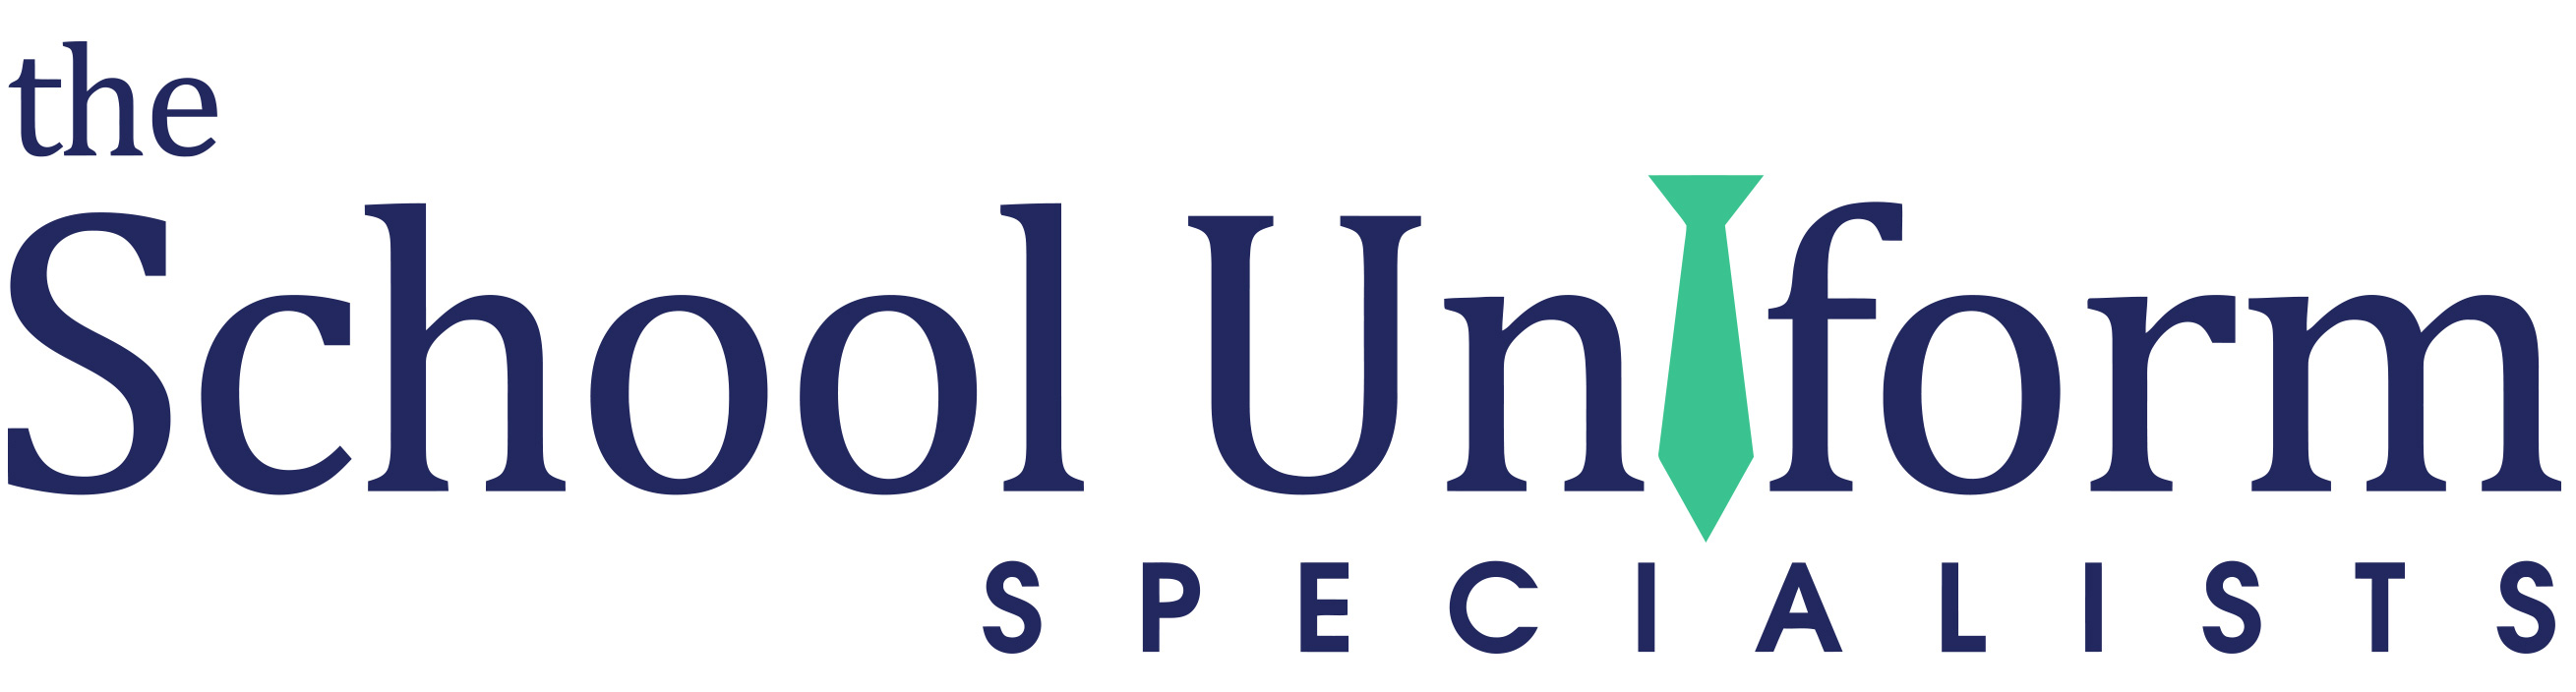 The School Uniform Specialists logo